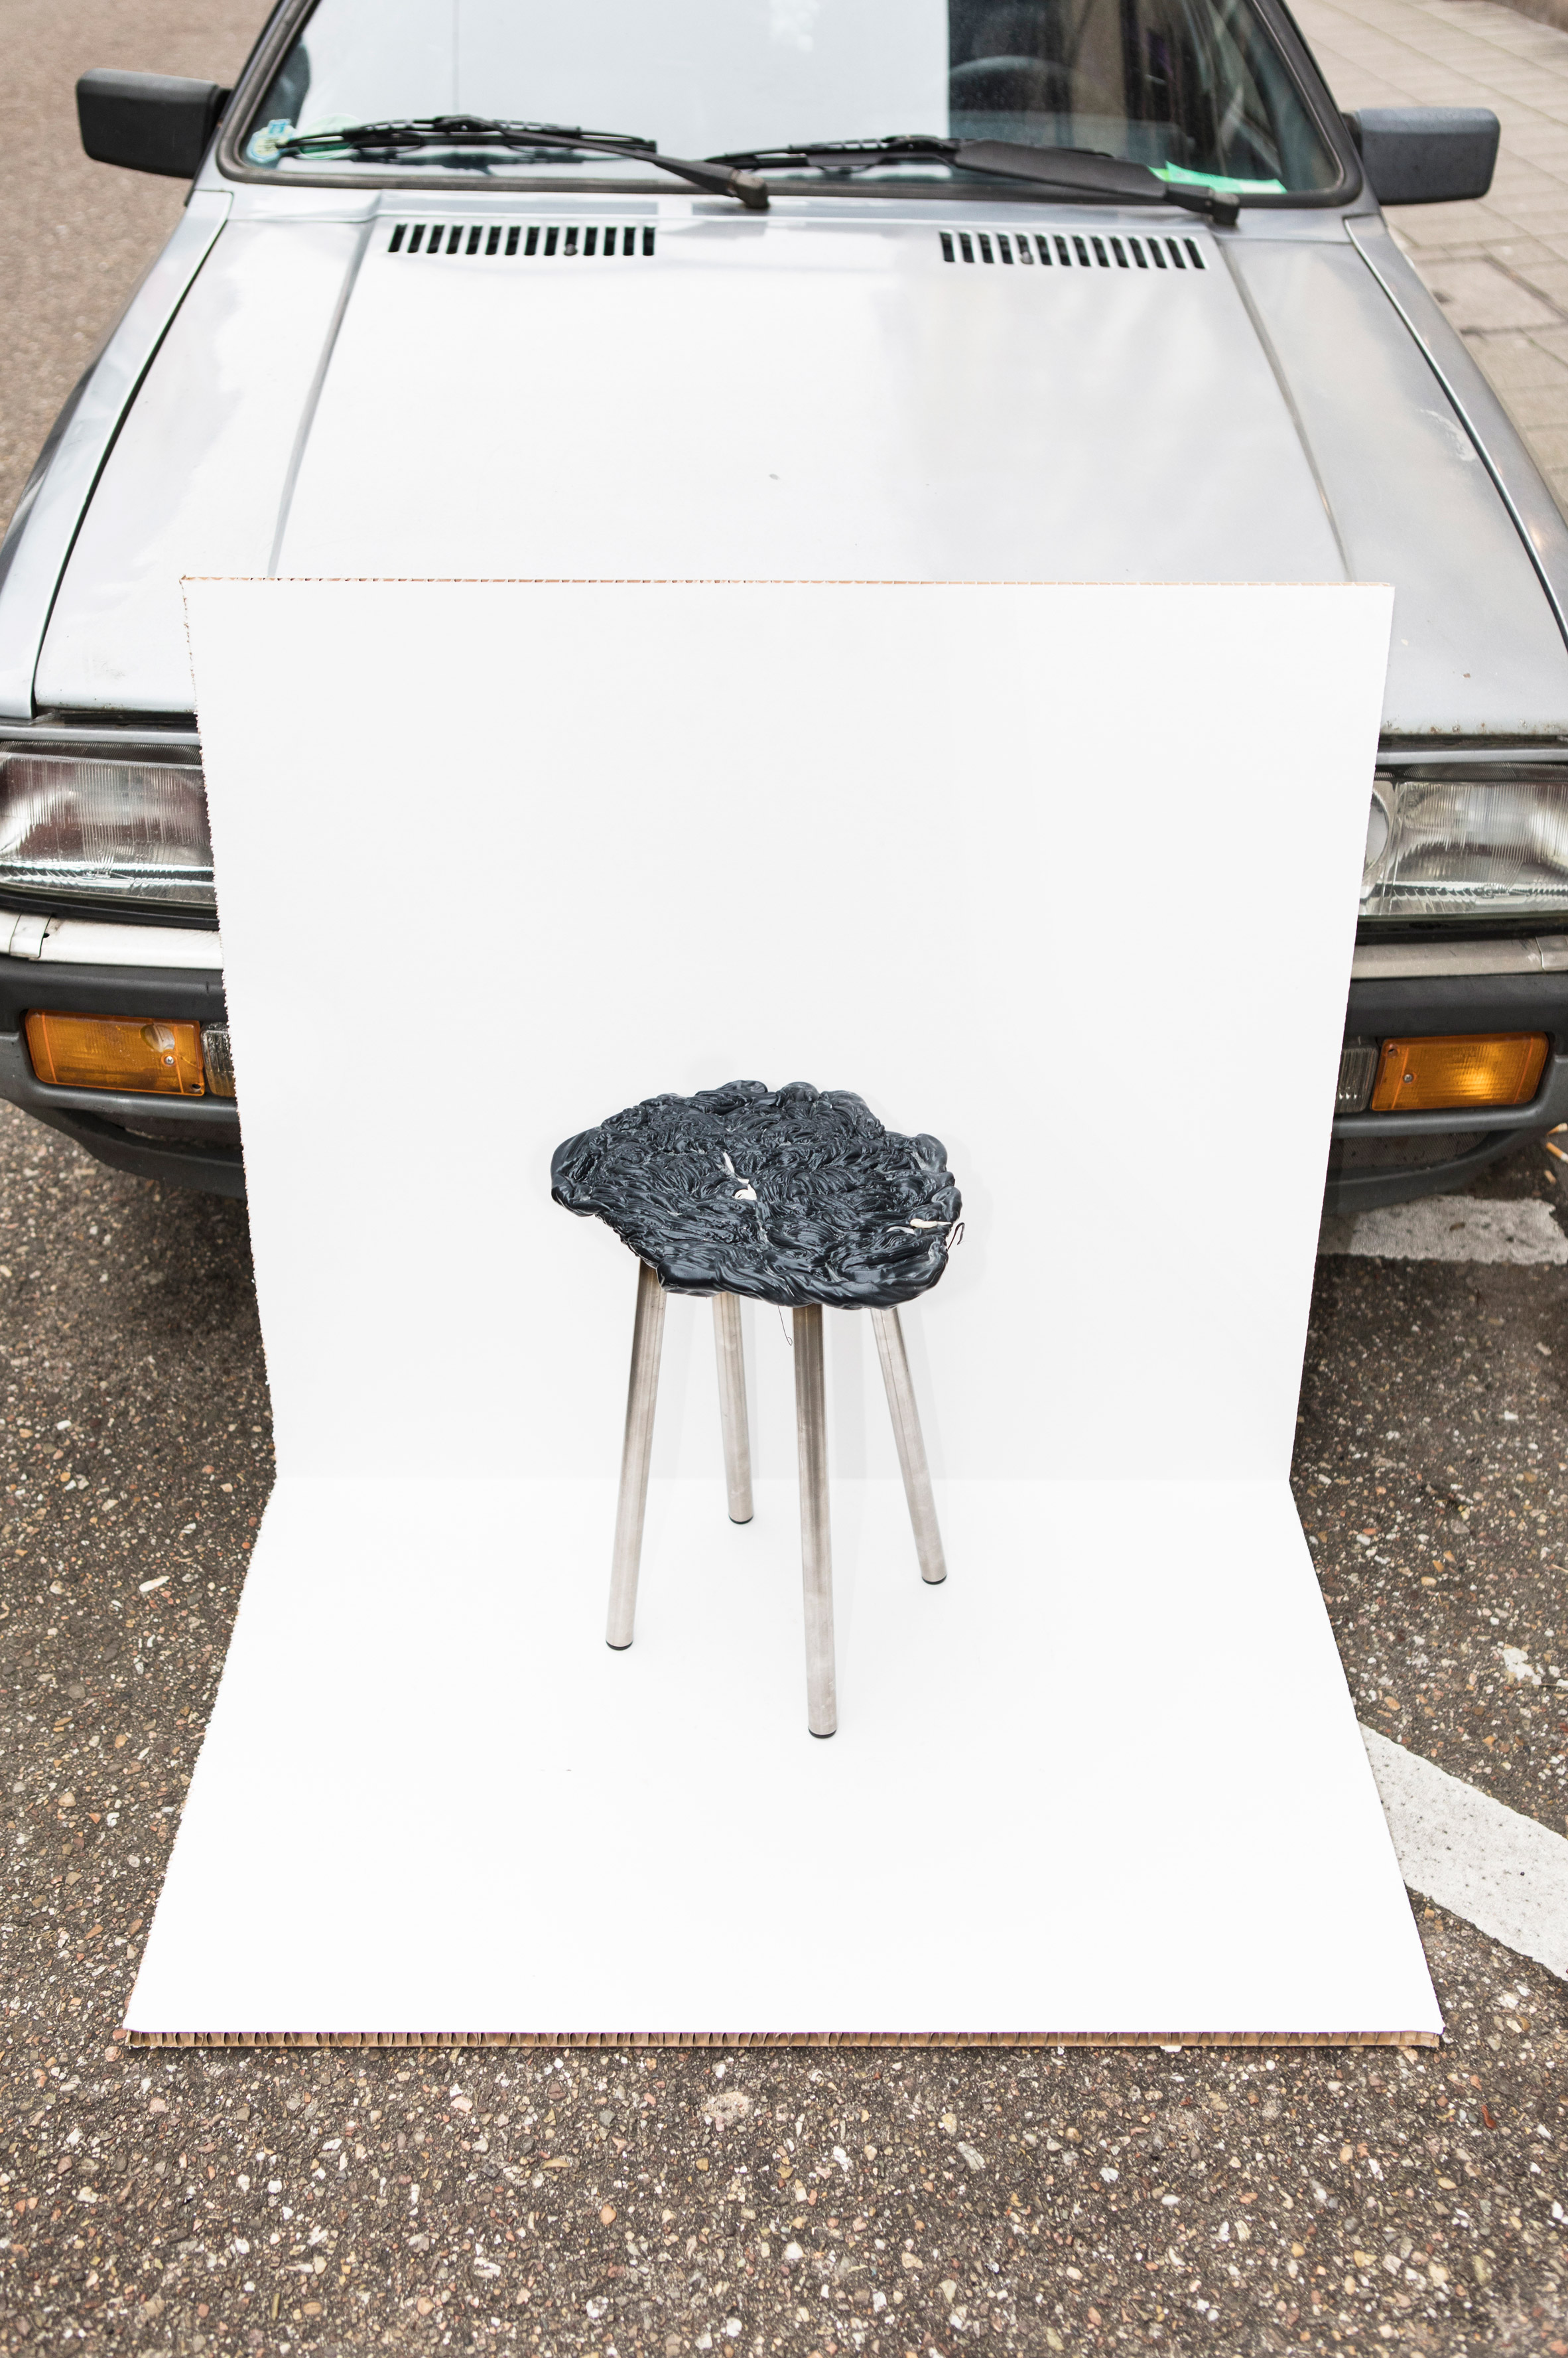 Scrap Life Project transforms waste plastic from injection-moulding process into stools